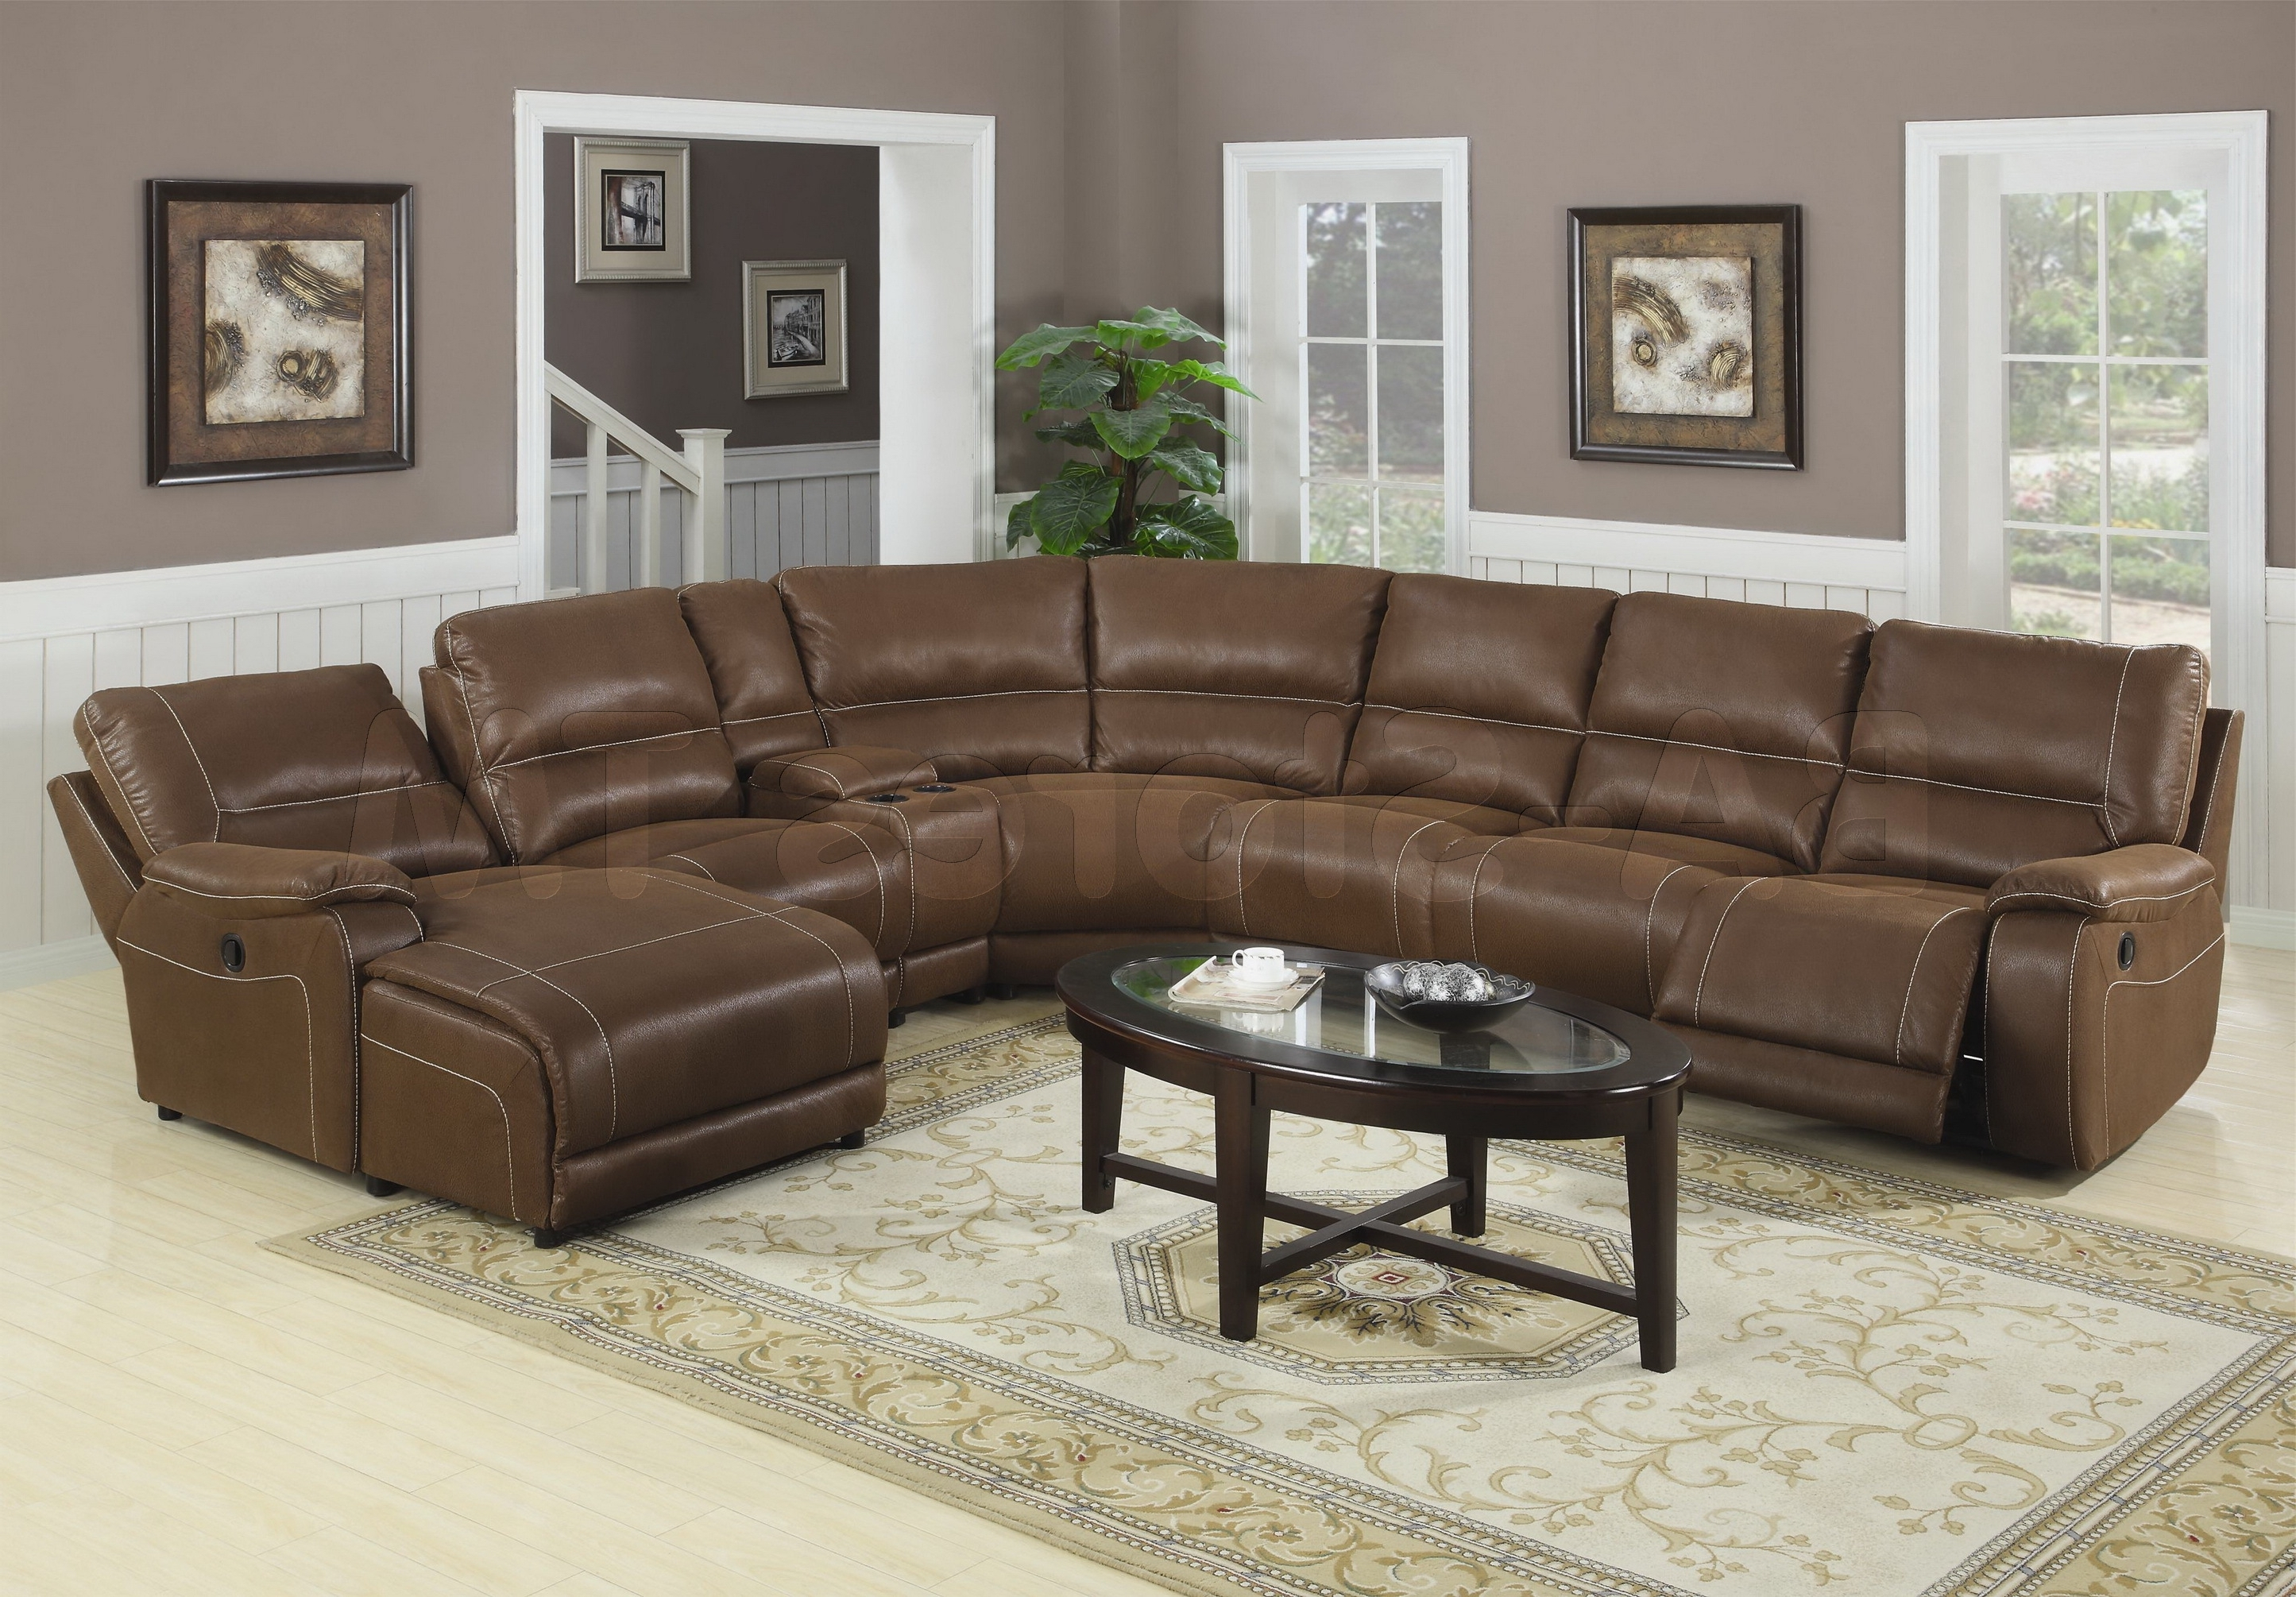 Famous Large Sectional Sofas Within Sectional Sofa Design: Simple Large Sectional Sofa With Chaise (View 19 of 20)